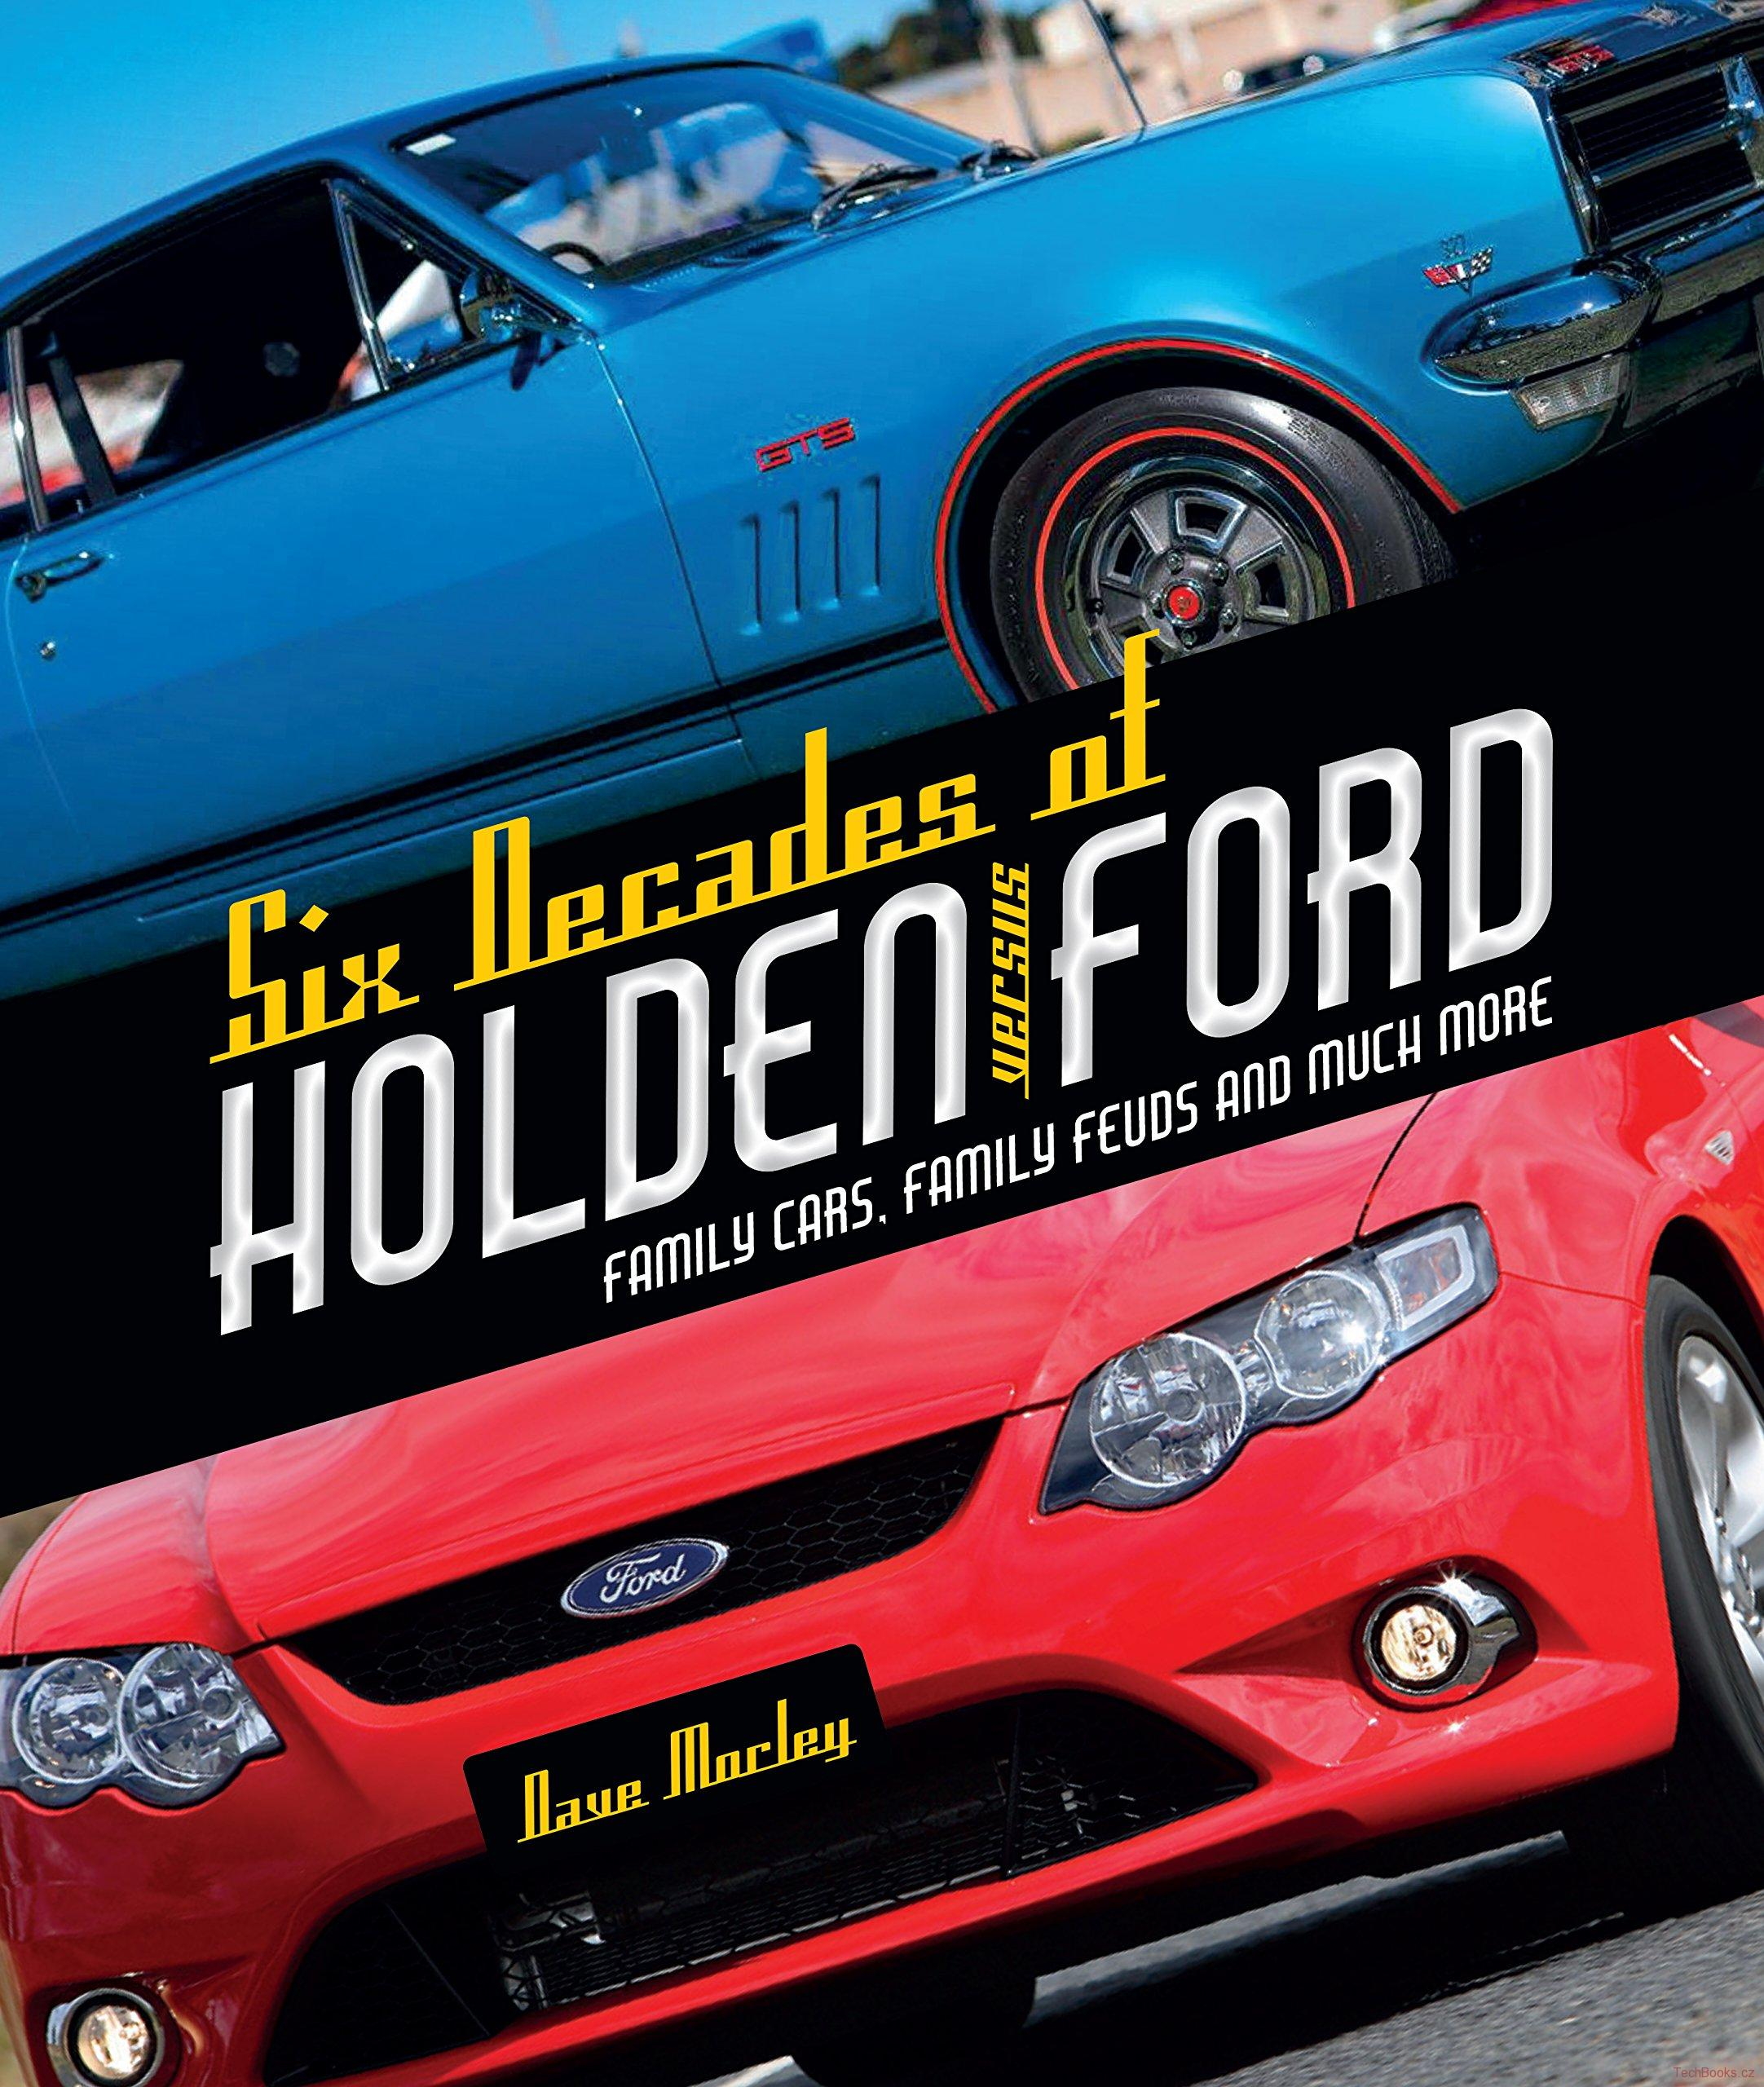 Six decades of Holden versus Ford